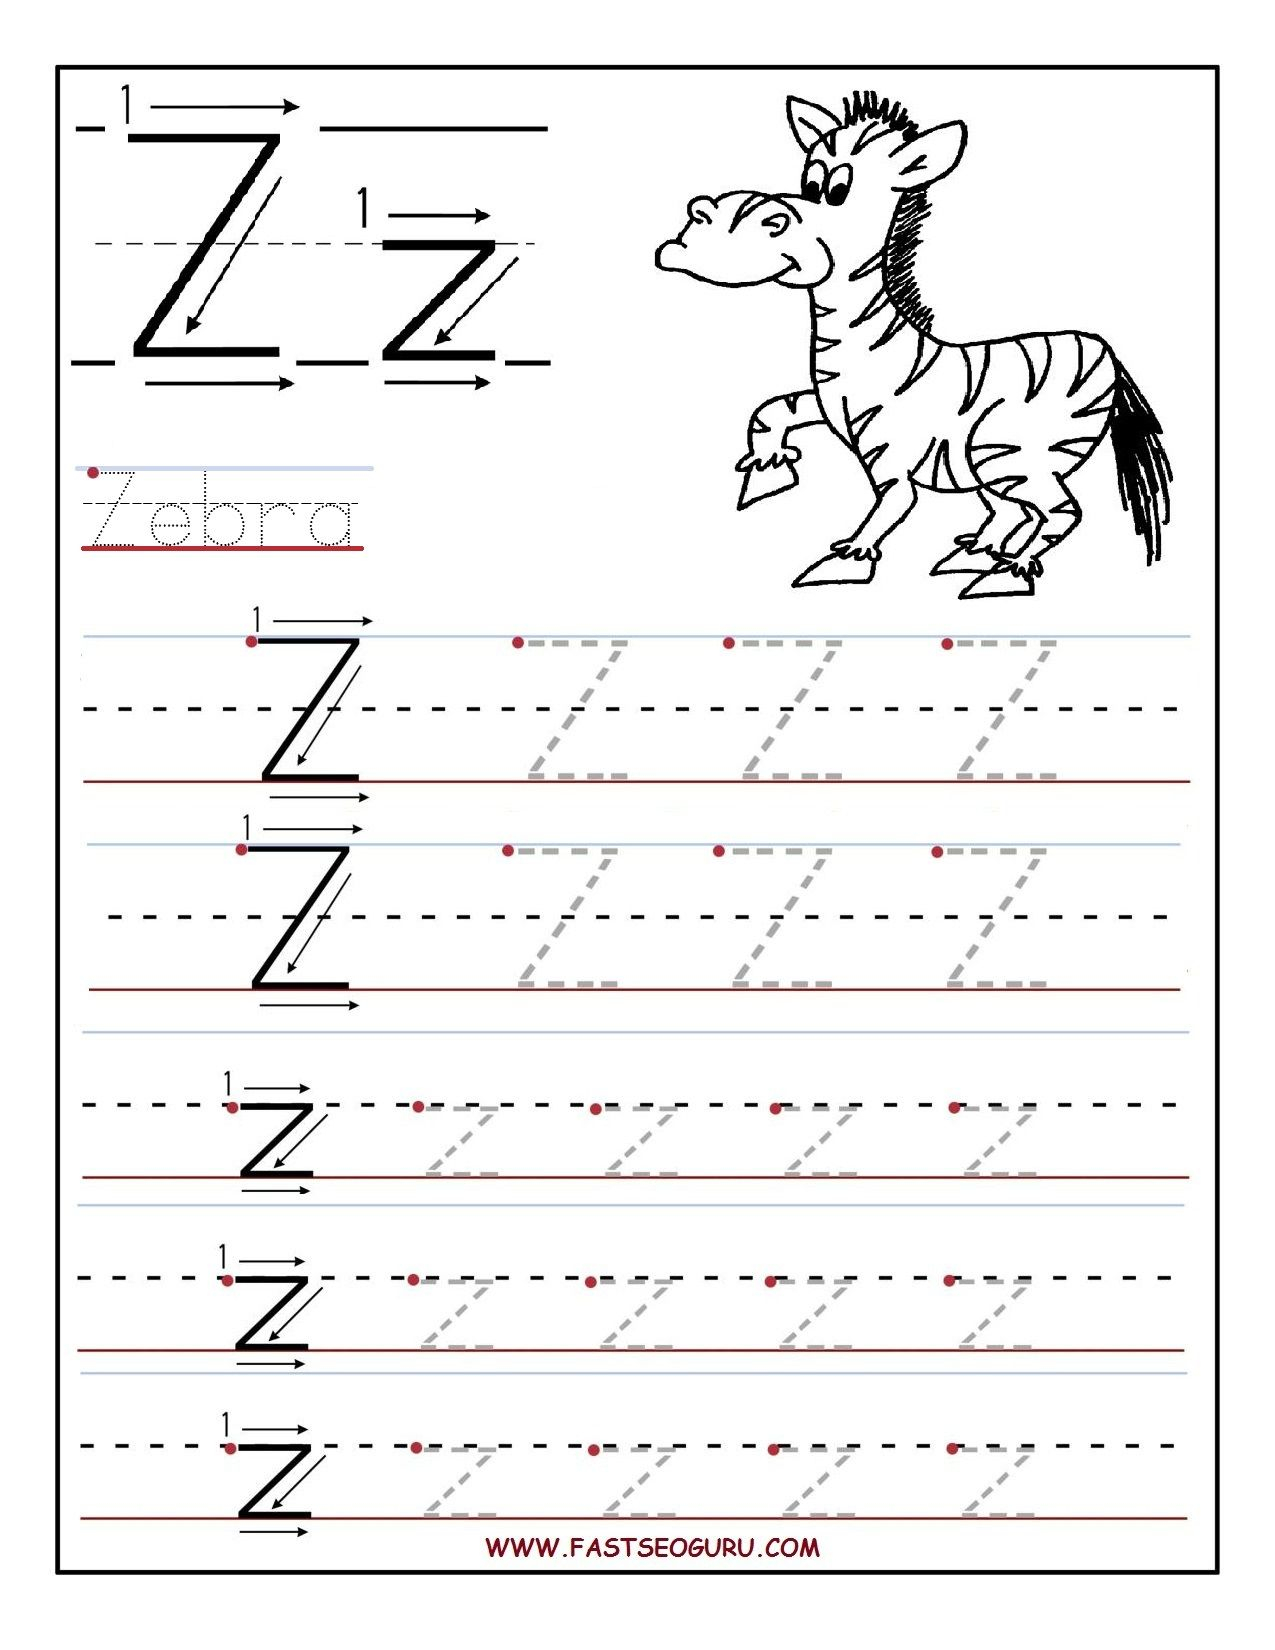 Printable Letter Z Tracing Worksheets For Preschool intended for Letter Z Tracing Preschool